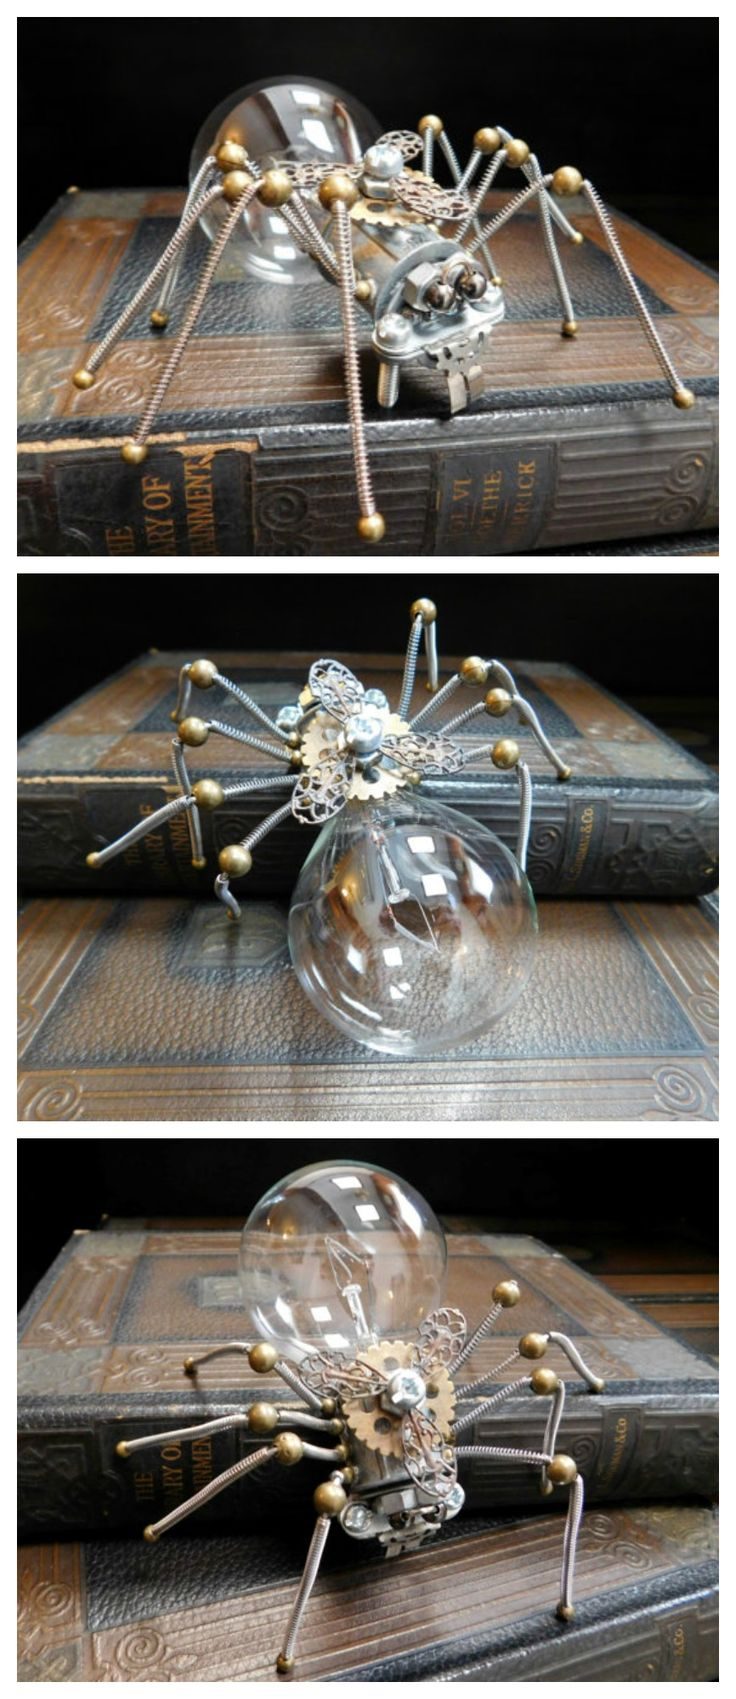 Steampunk spider figurine